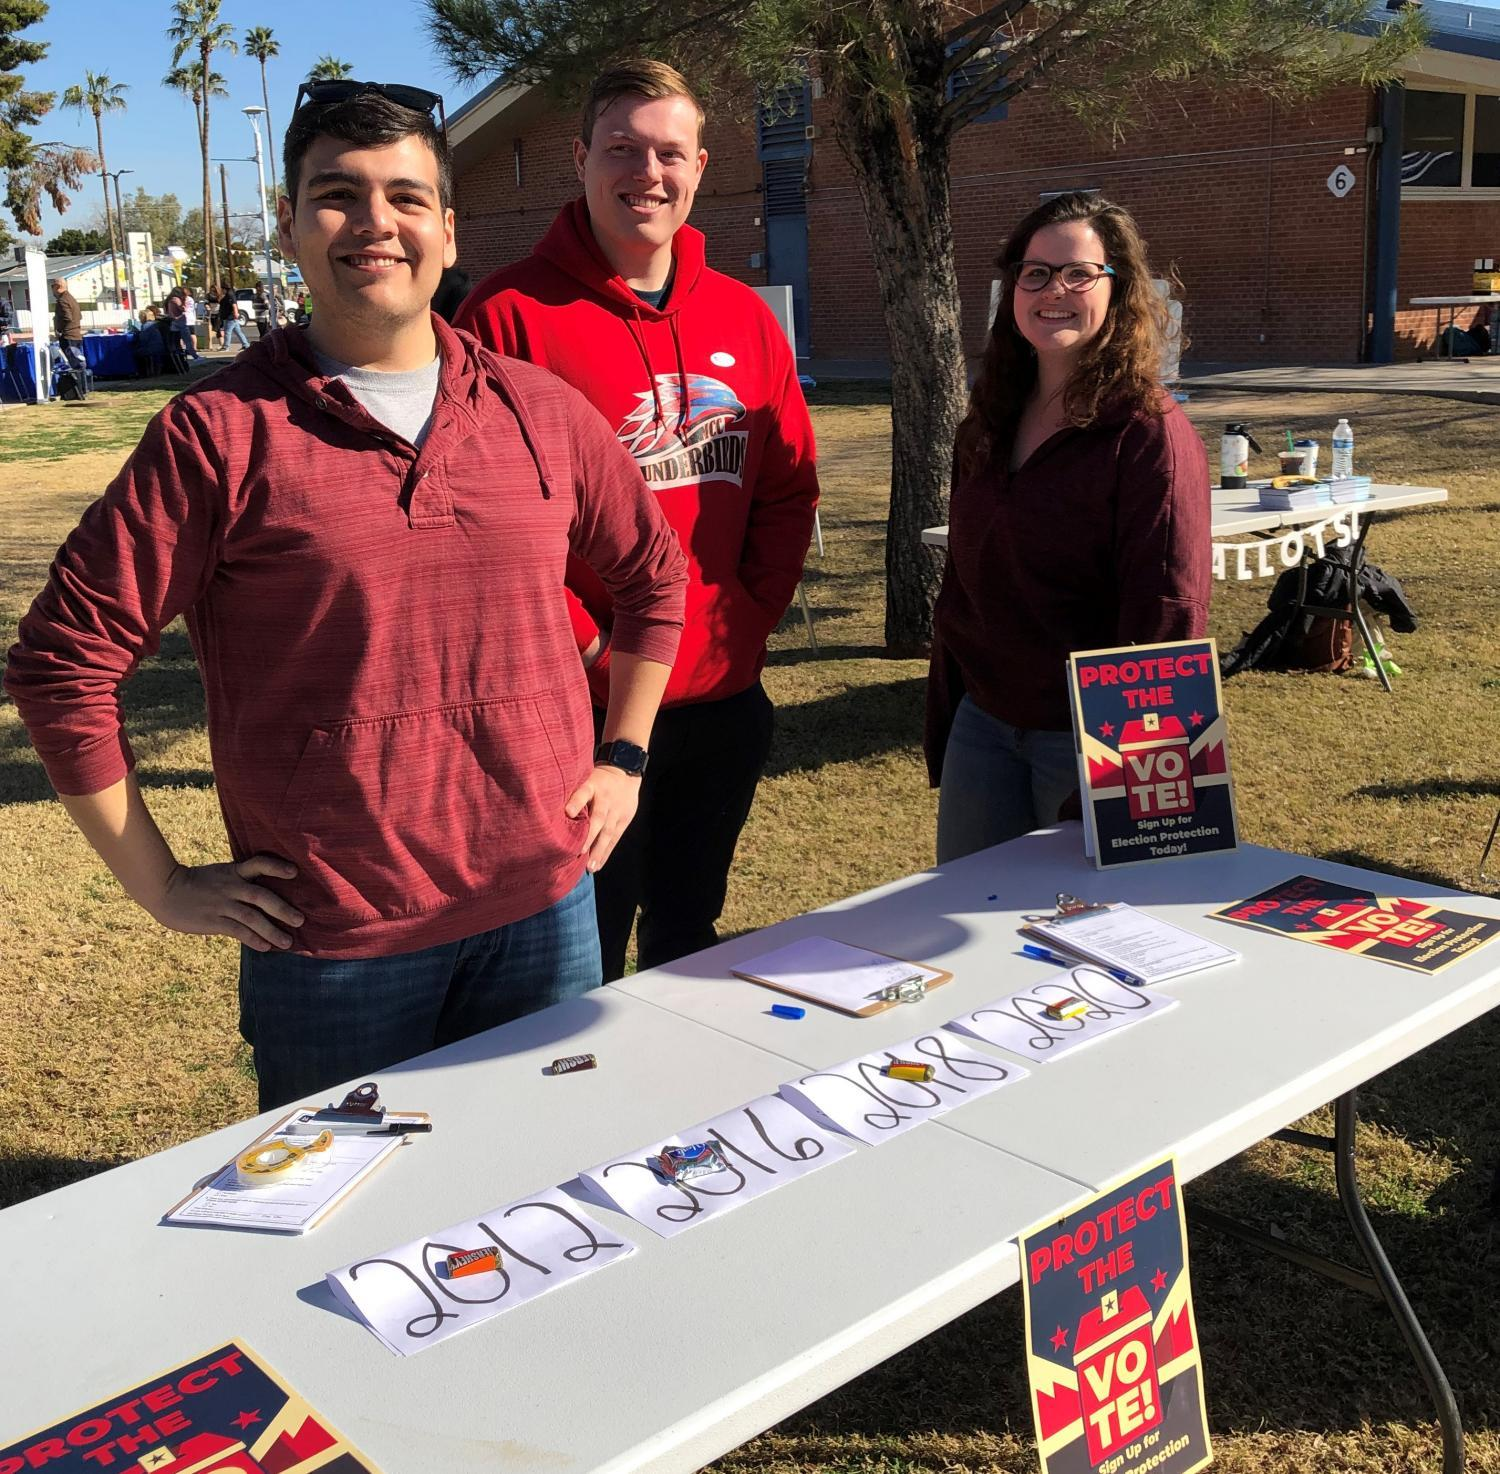 Tim Hernandez (left), Travis Huber (middle), and Caroline Livingston (right) recruit volunteer poll monitors for the upcoming 2020 election cycle in Arizona.